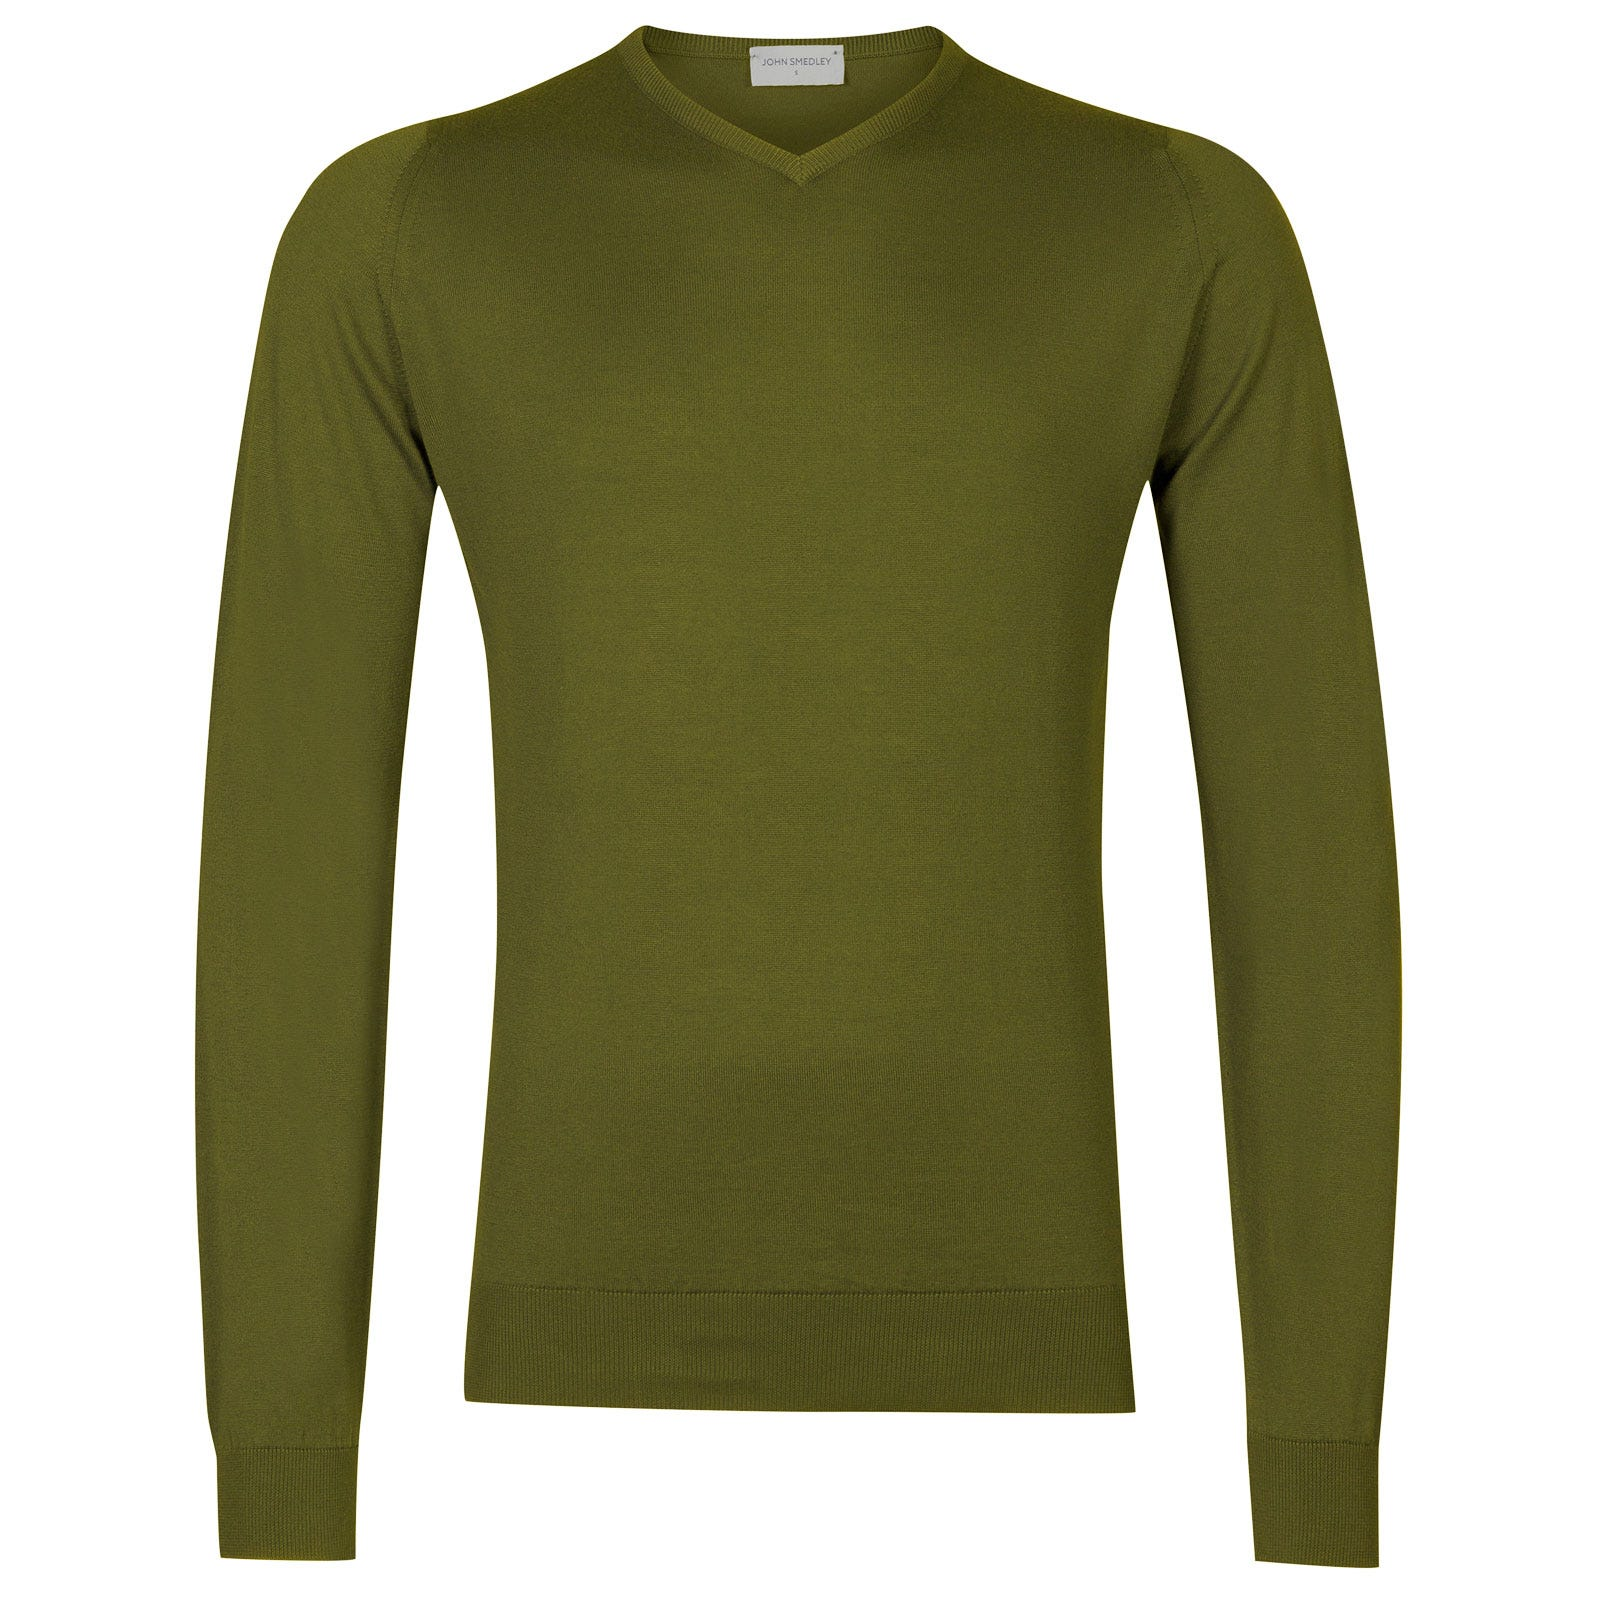 John Smedley Aydon Sea Island Cotton Pullover in Lumsdale Green-S